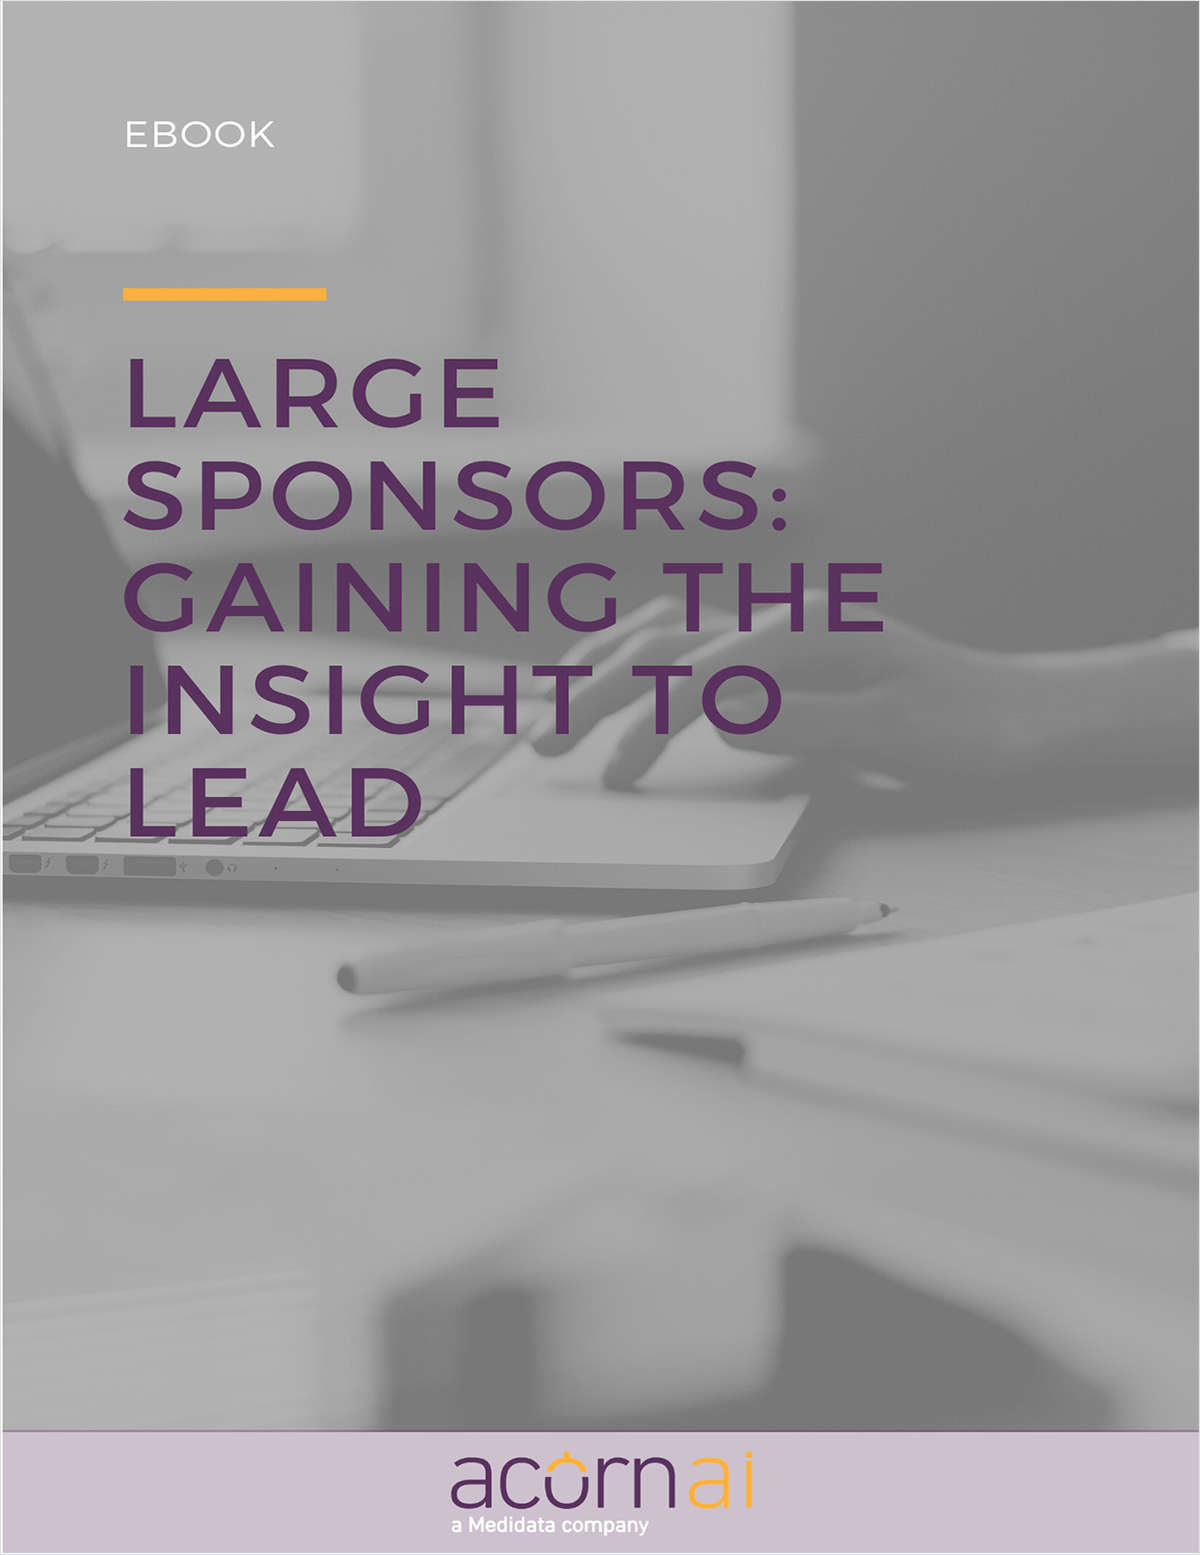 Gaining the Insight to Lead